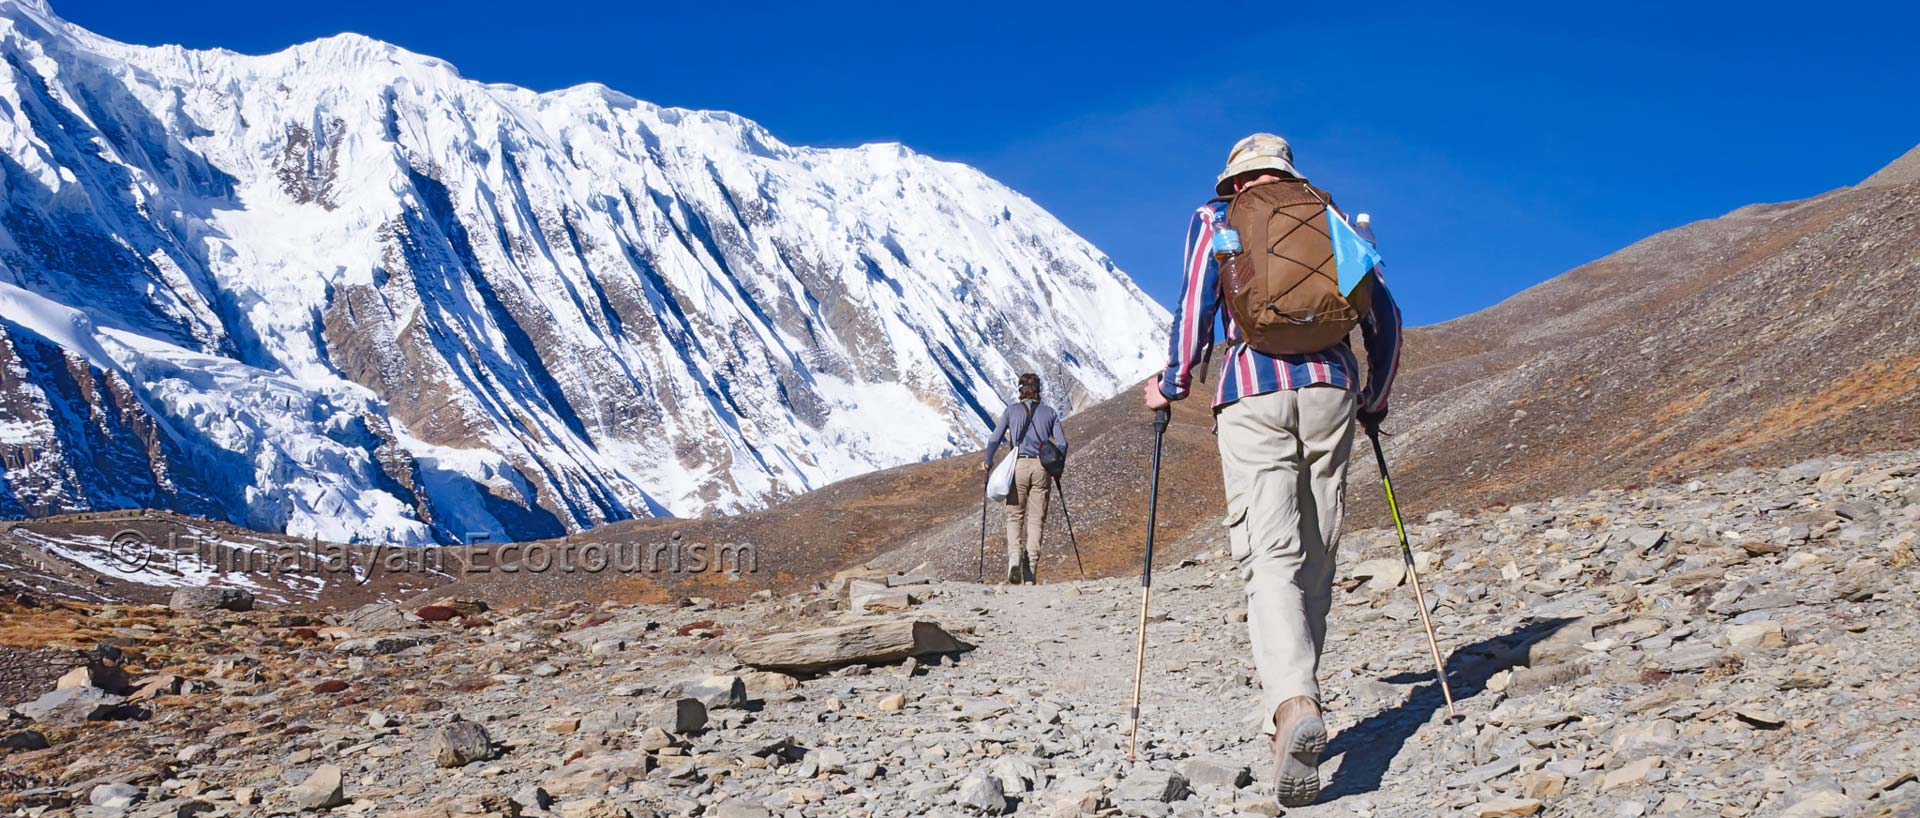 Trek to the best places of Himachal Pradesh